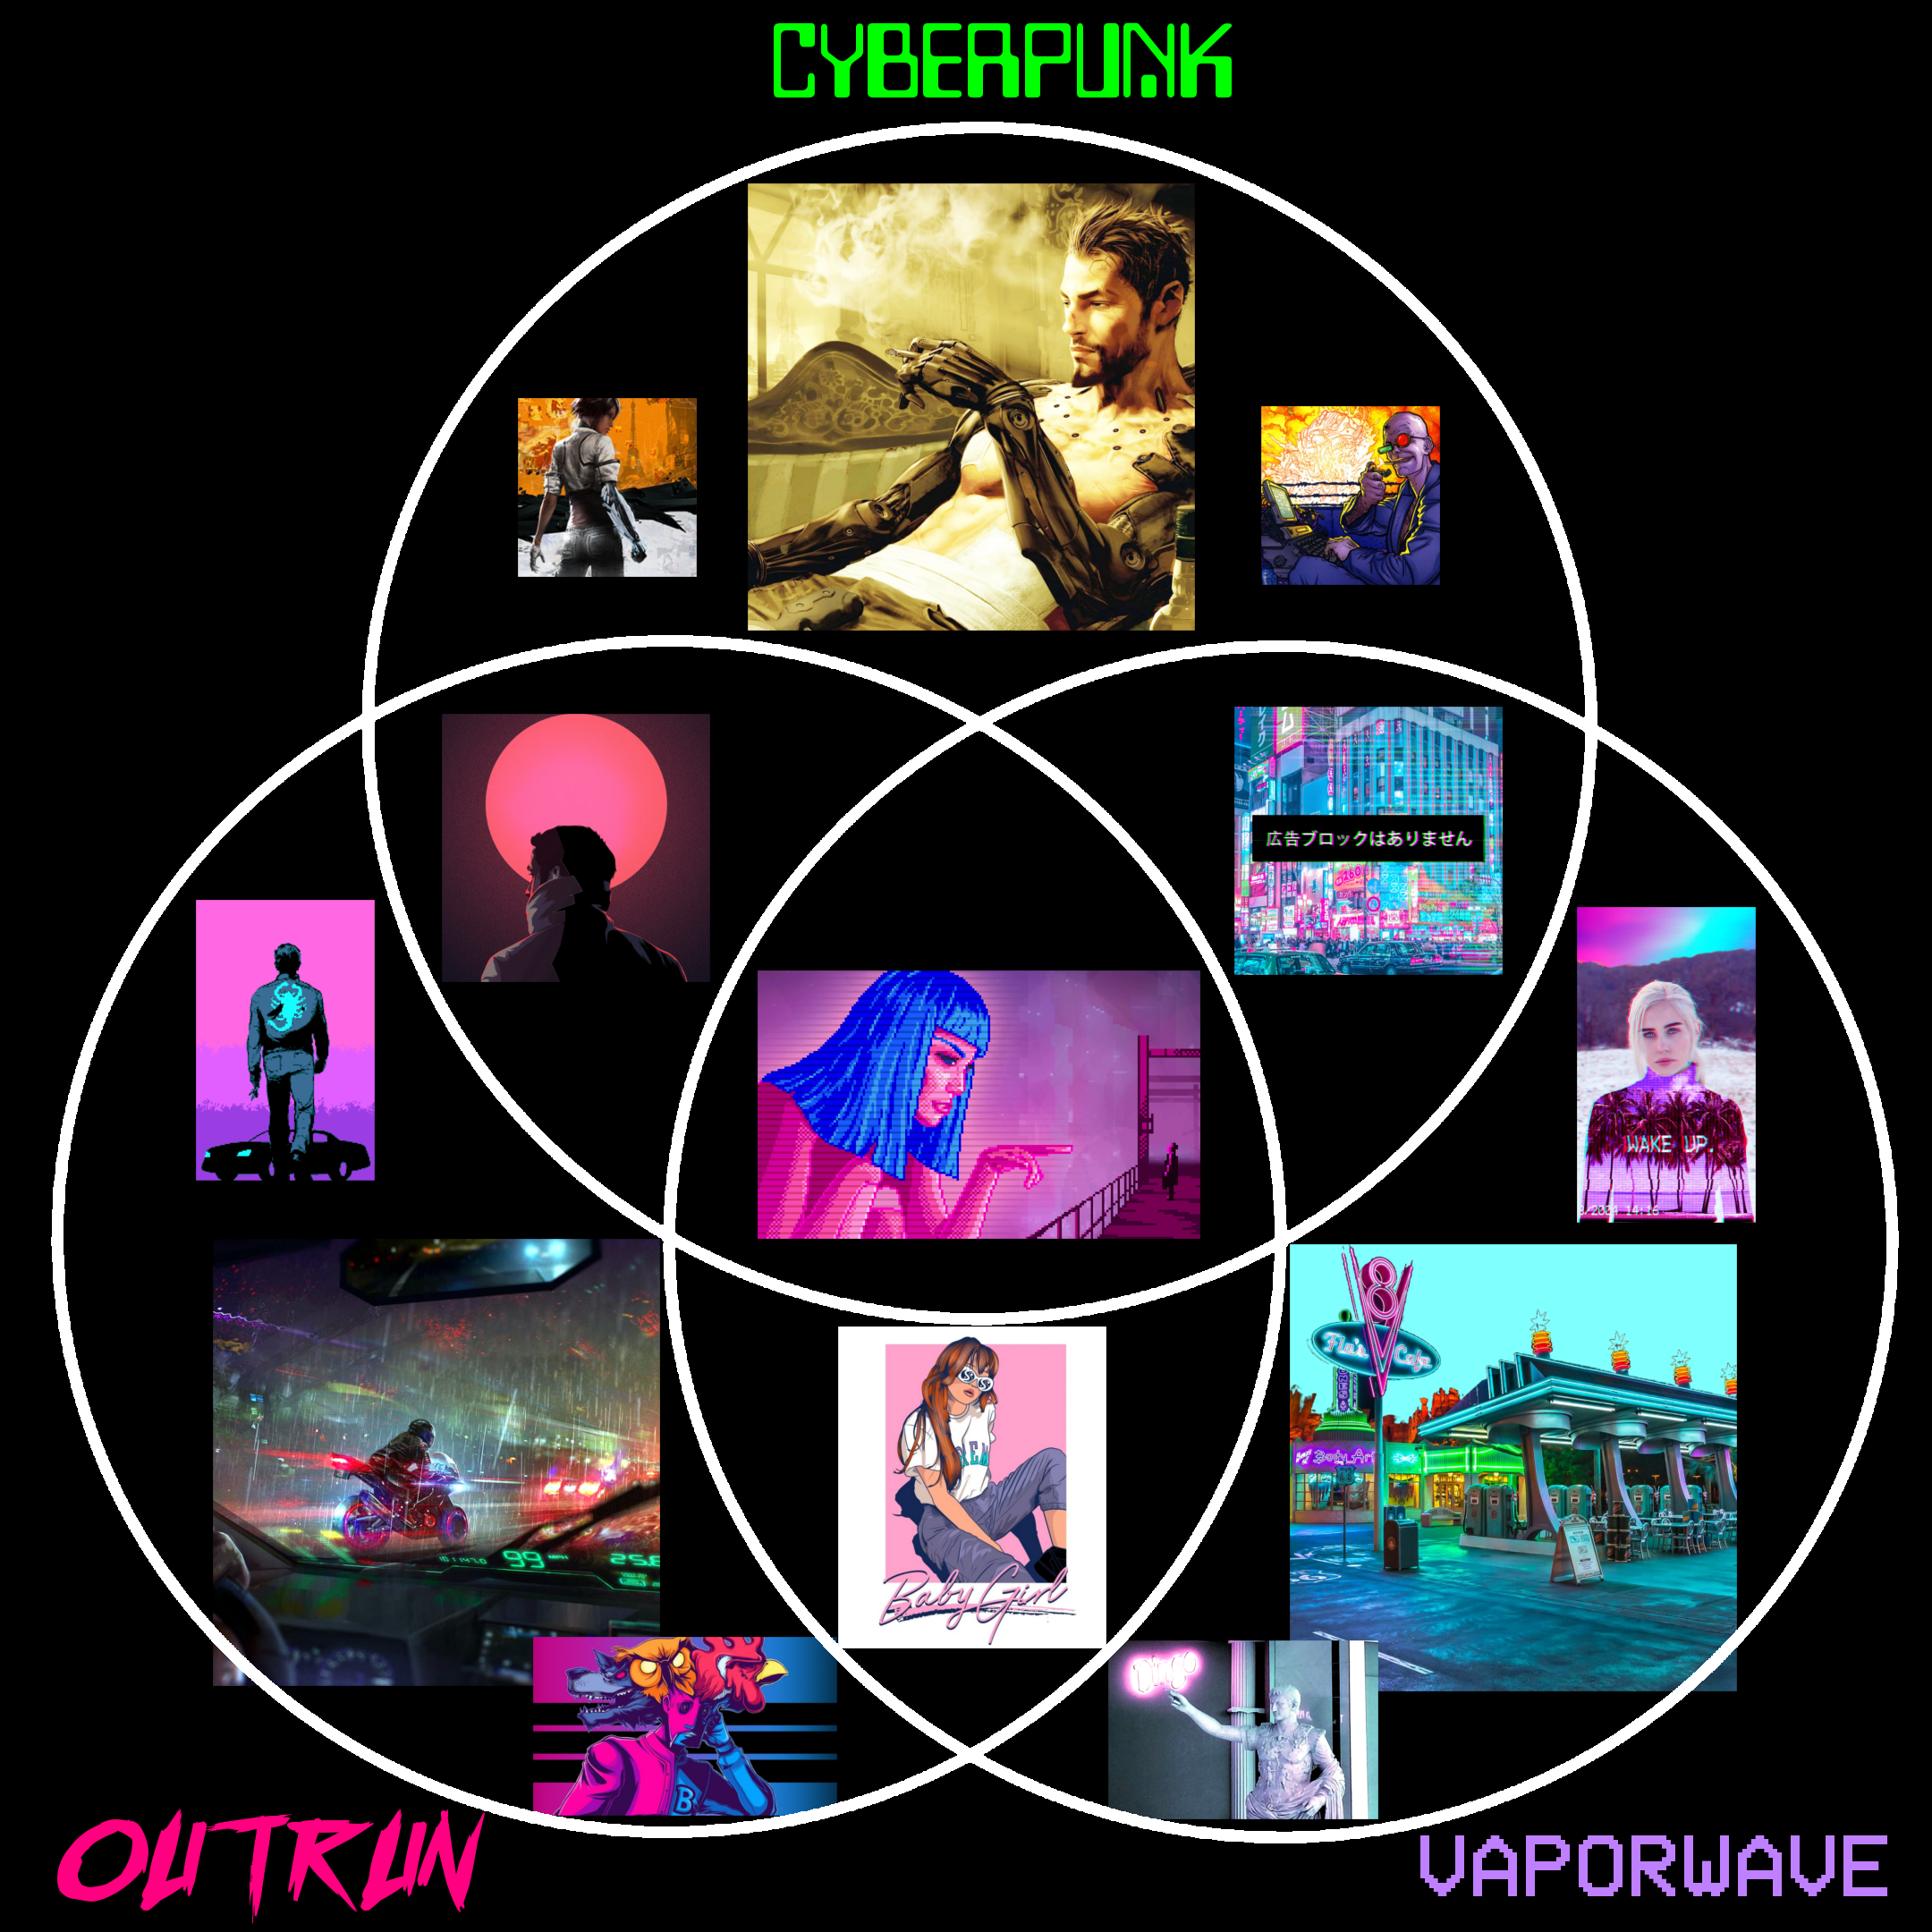 a venn diagram comparing cyberpunk outrun and vaporwave styles and themes [ 2160 x 2160 Pixel ]